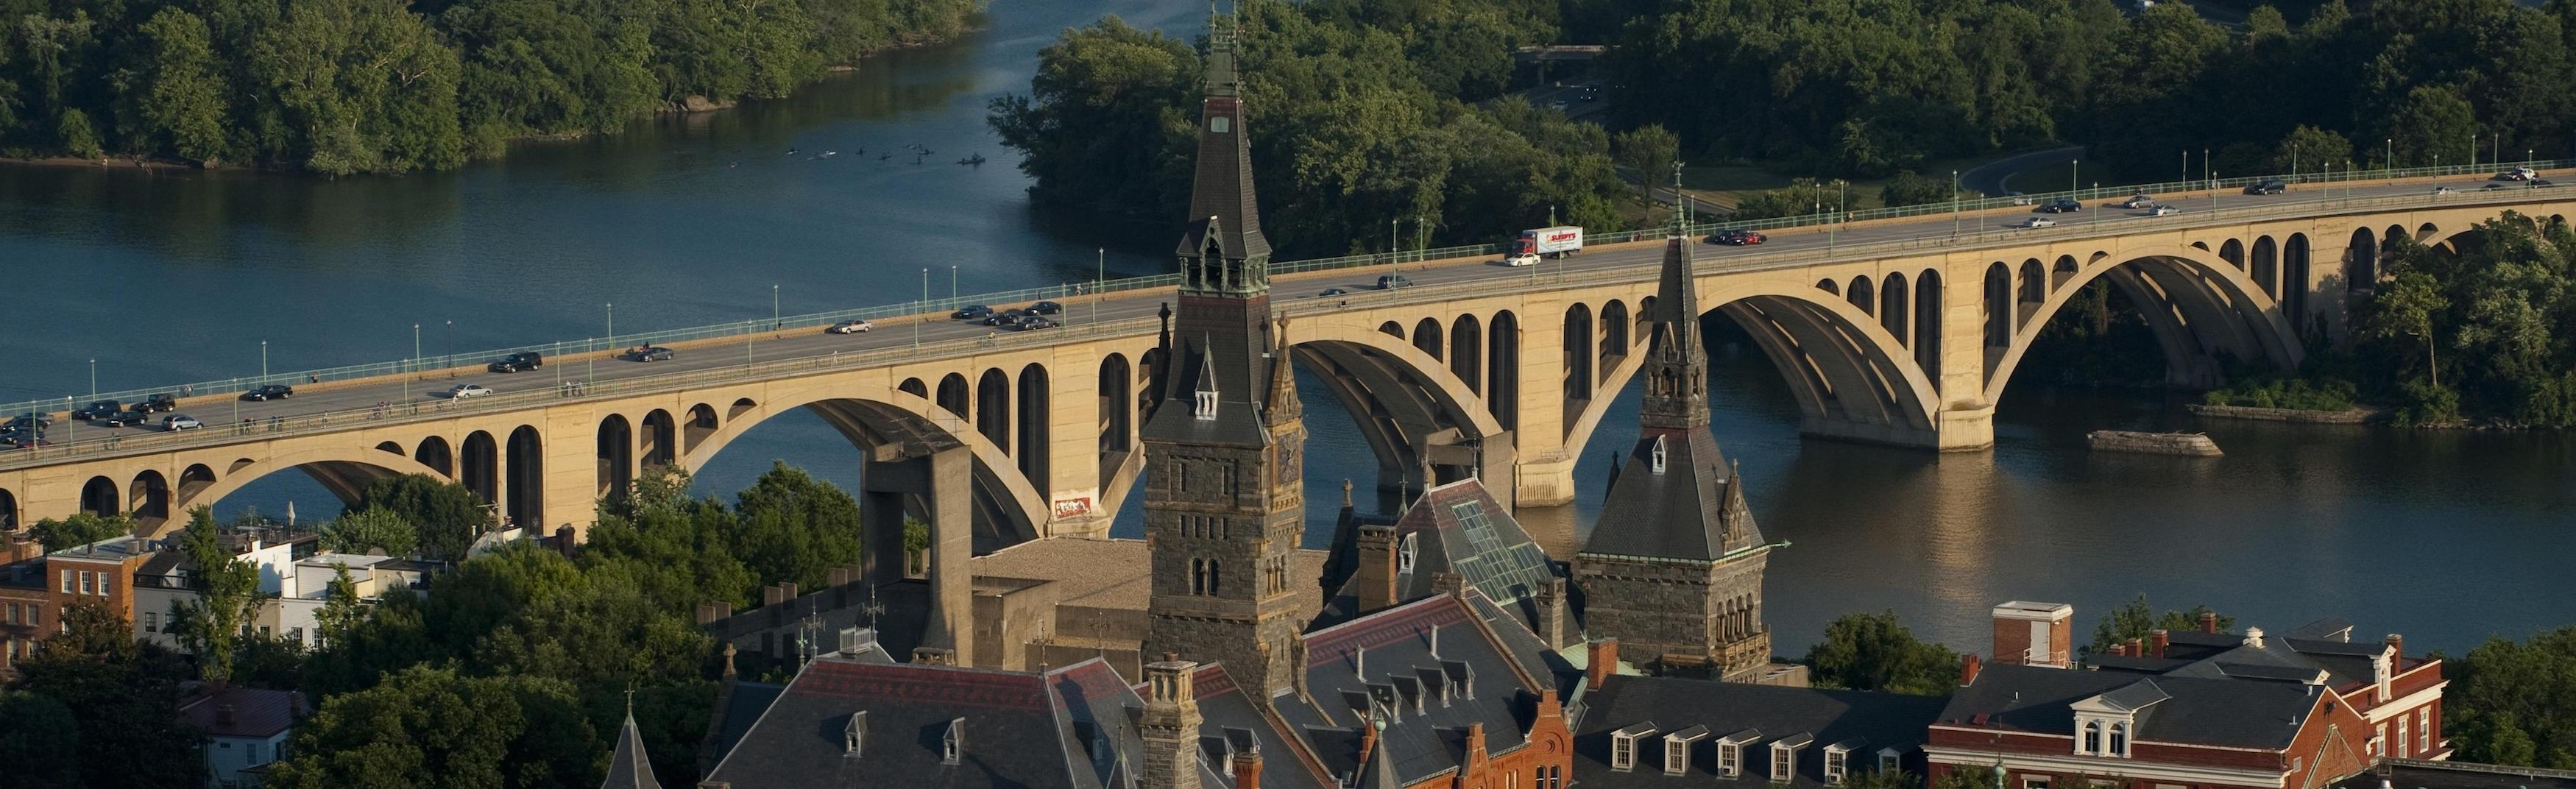 Aerial view of Georgetown University looking down the Potomac River